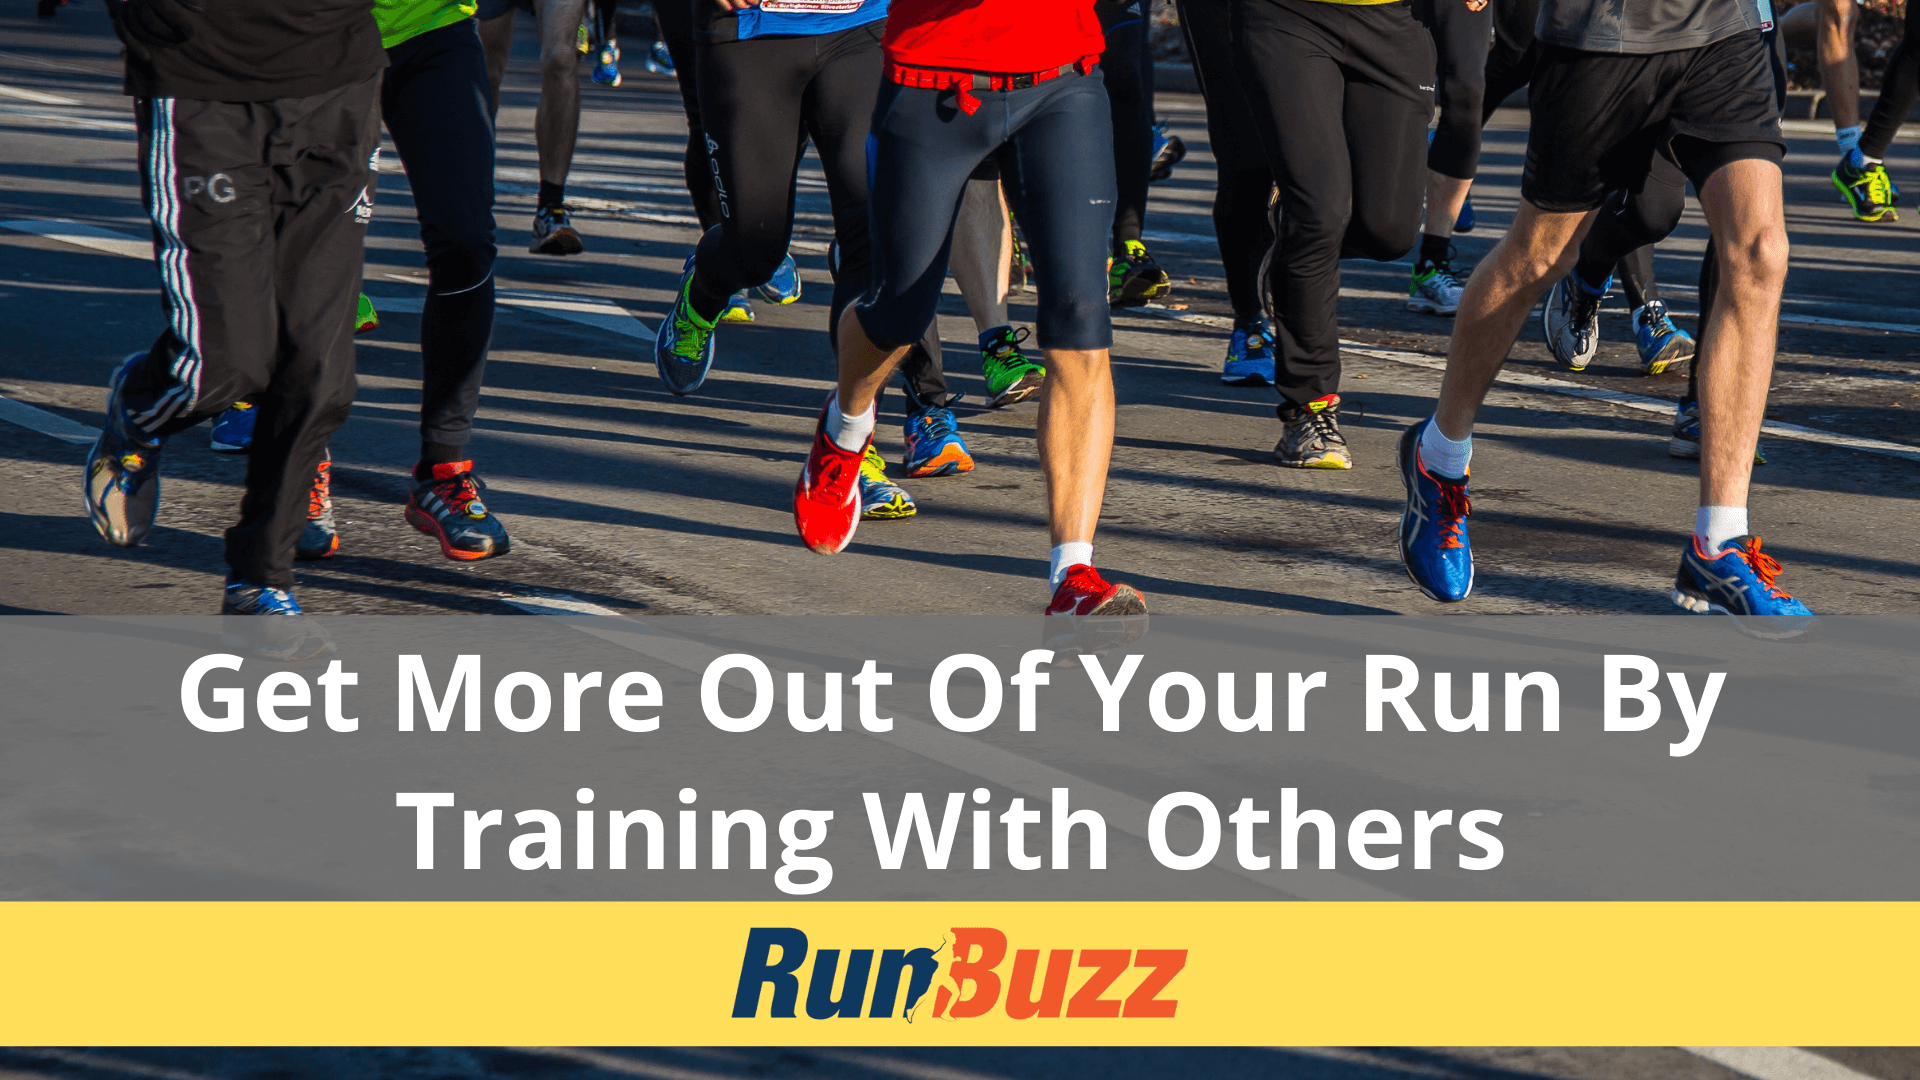 Get-More-Out-Of-Your-Run-By-Training-With-Others